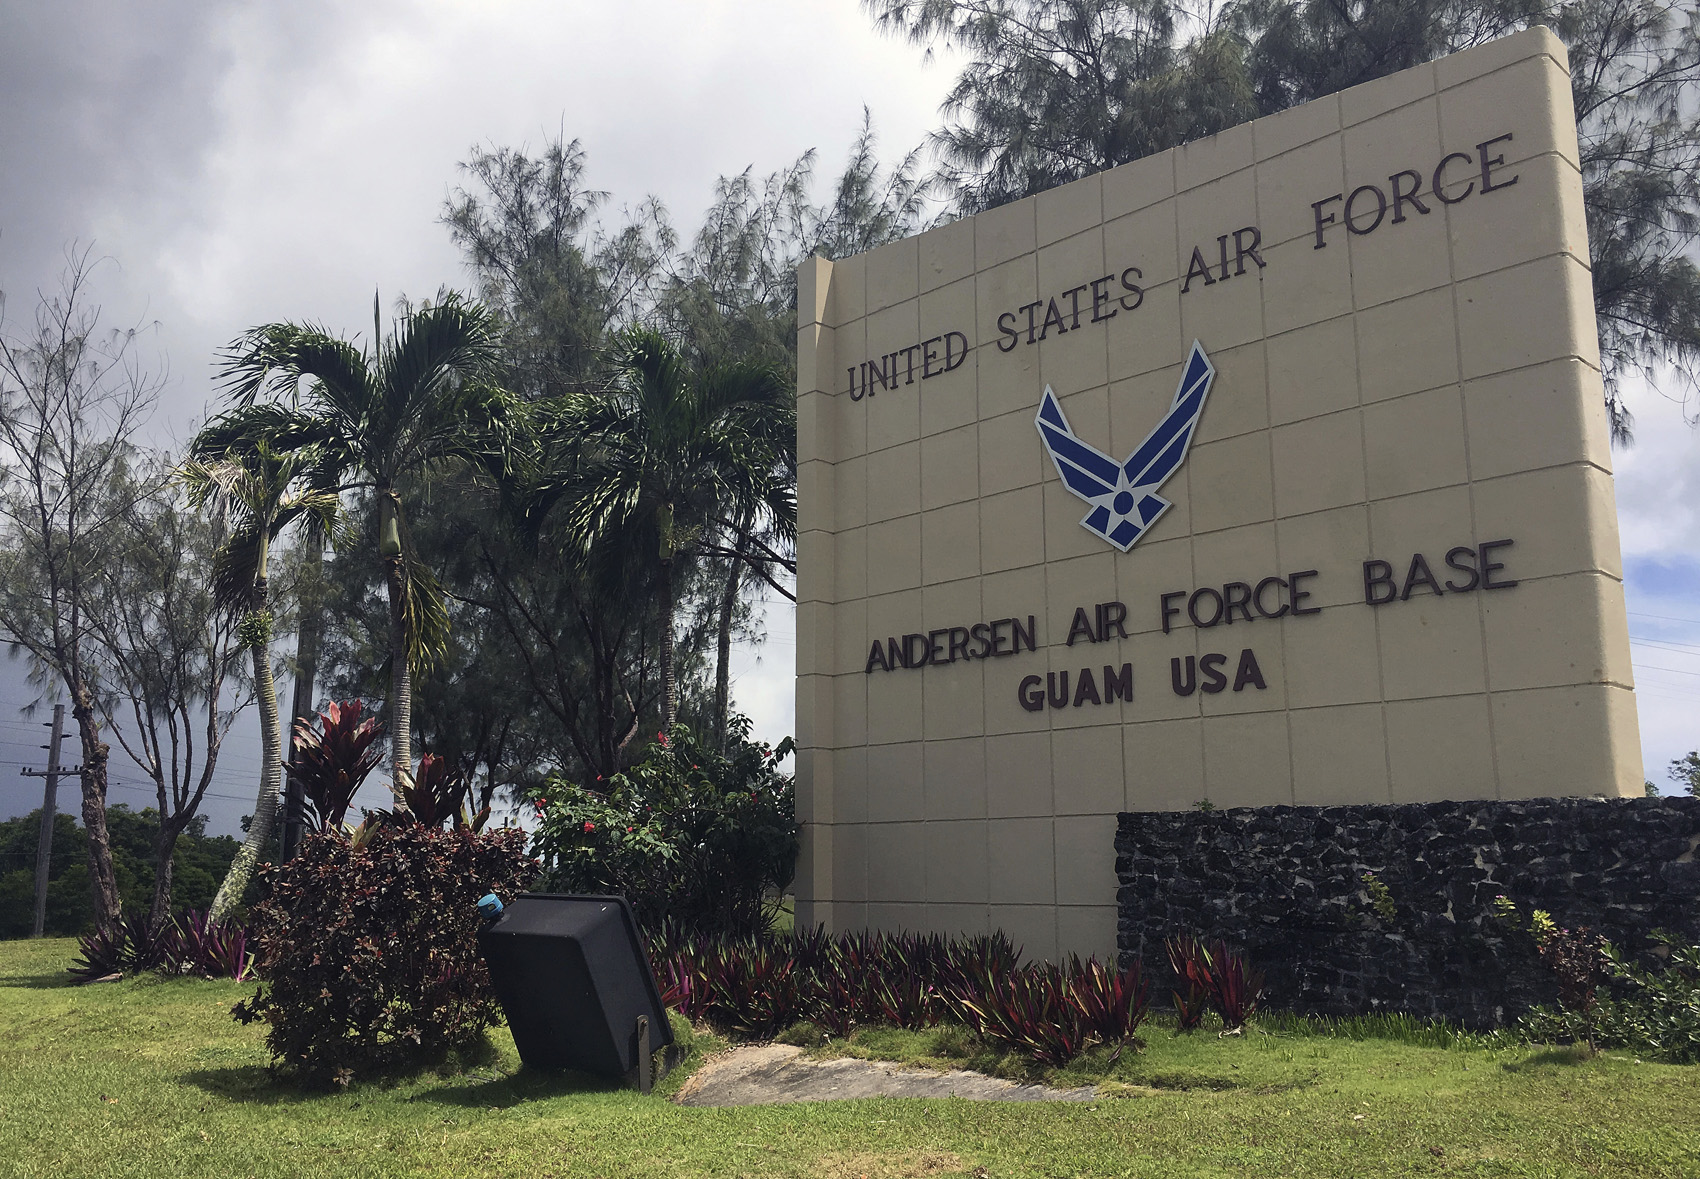 Airman 1st Class Isiaah Edwards has been found guilty of the murder of his roommate while in Guam. (Tassanee Vejpongsa/AP)